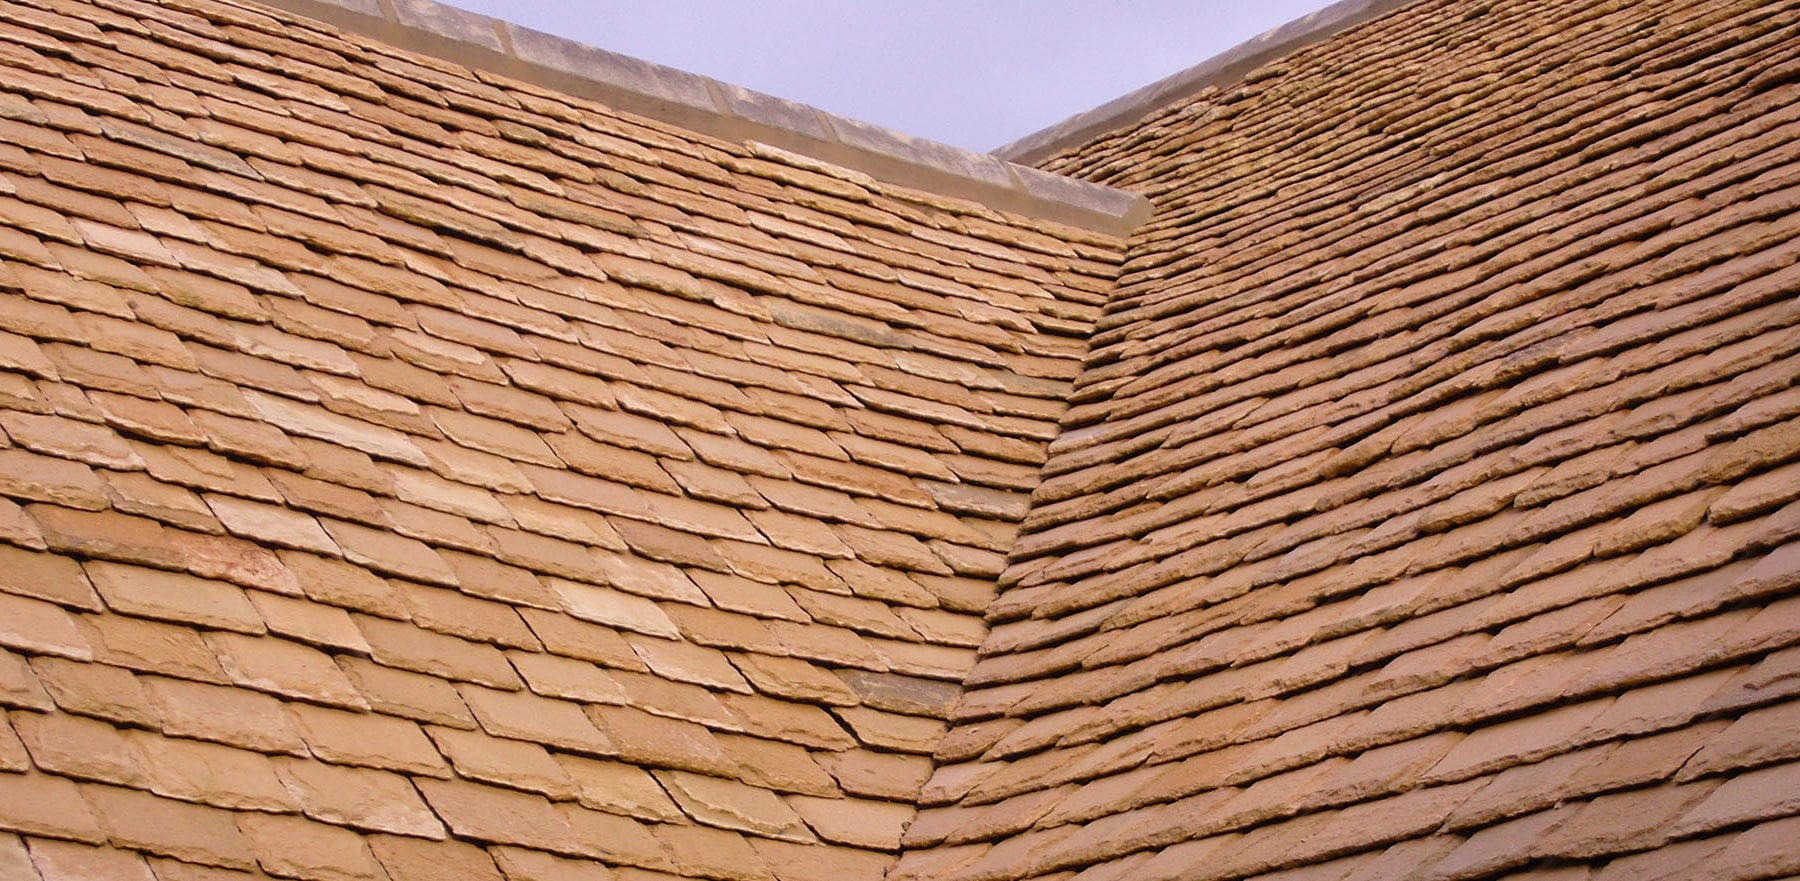 Lifestiles - Natural Stone Roof Tiles - The Stables, England 5